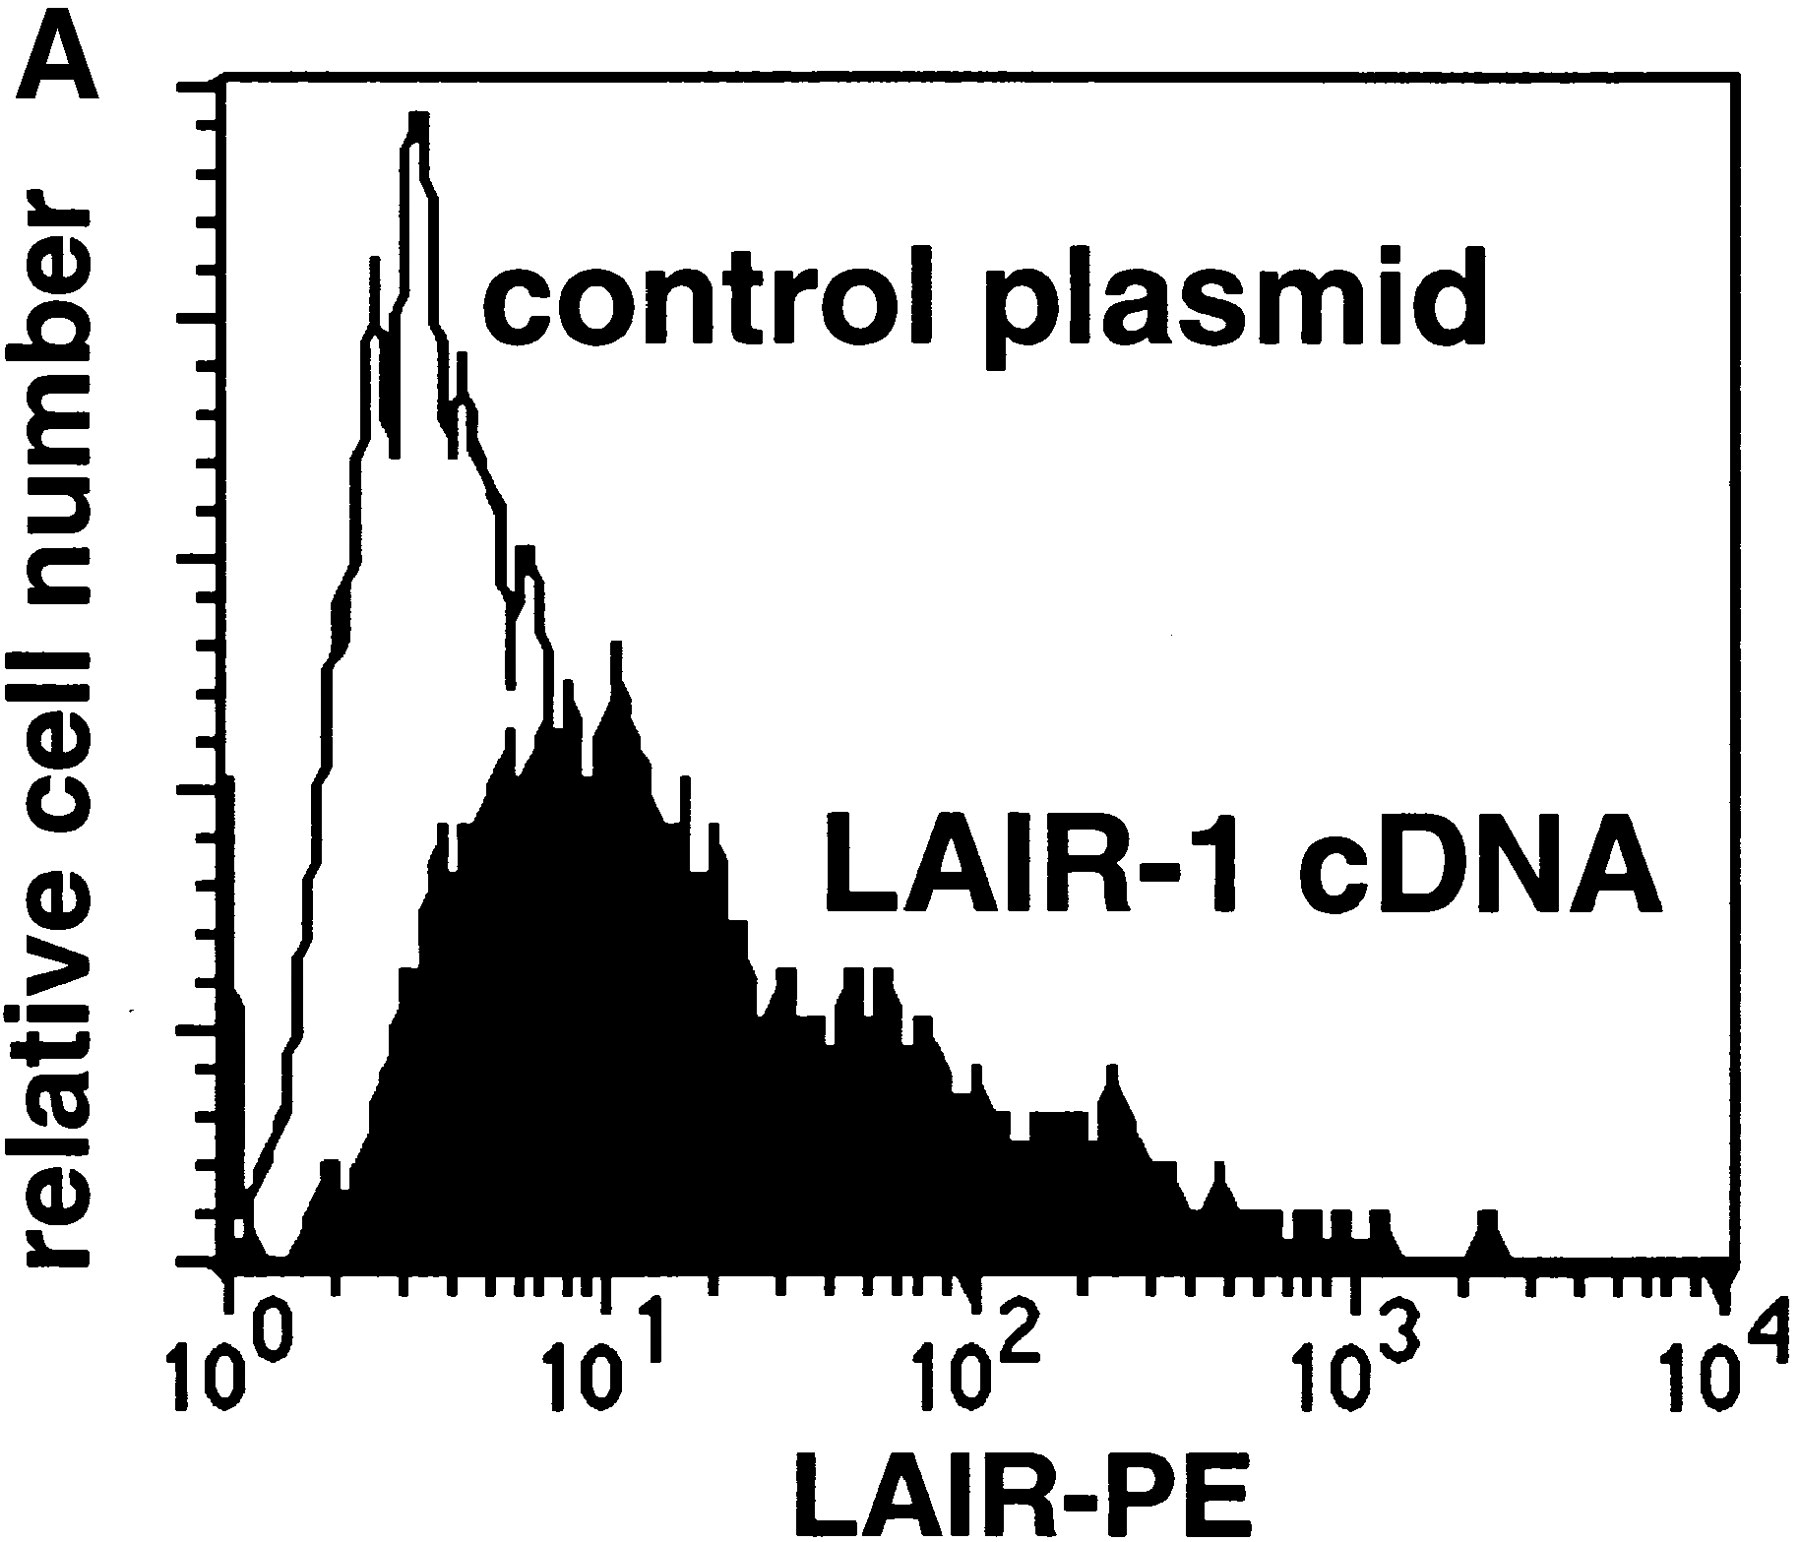 Lair 1 A Novel Inhibitory Receptor Expressed On Human